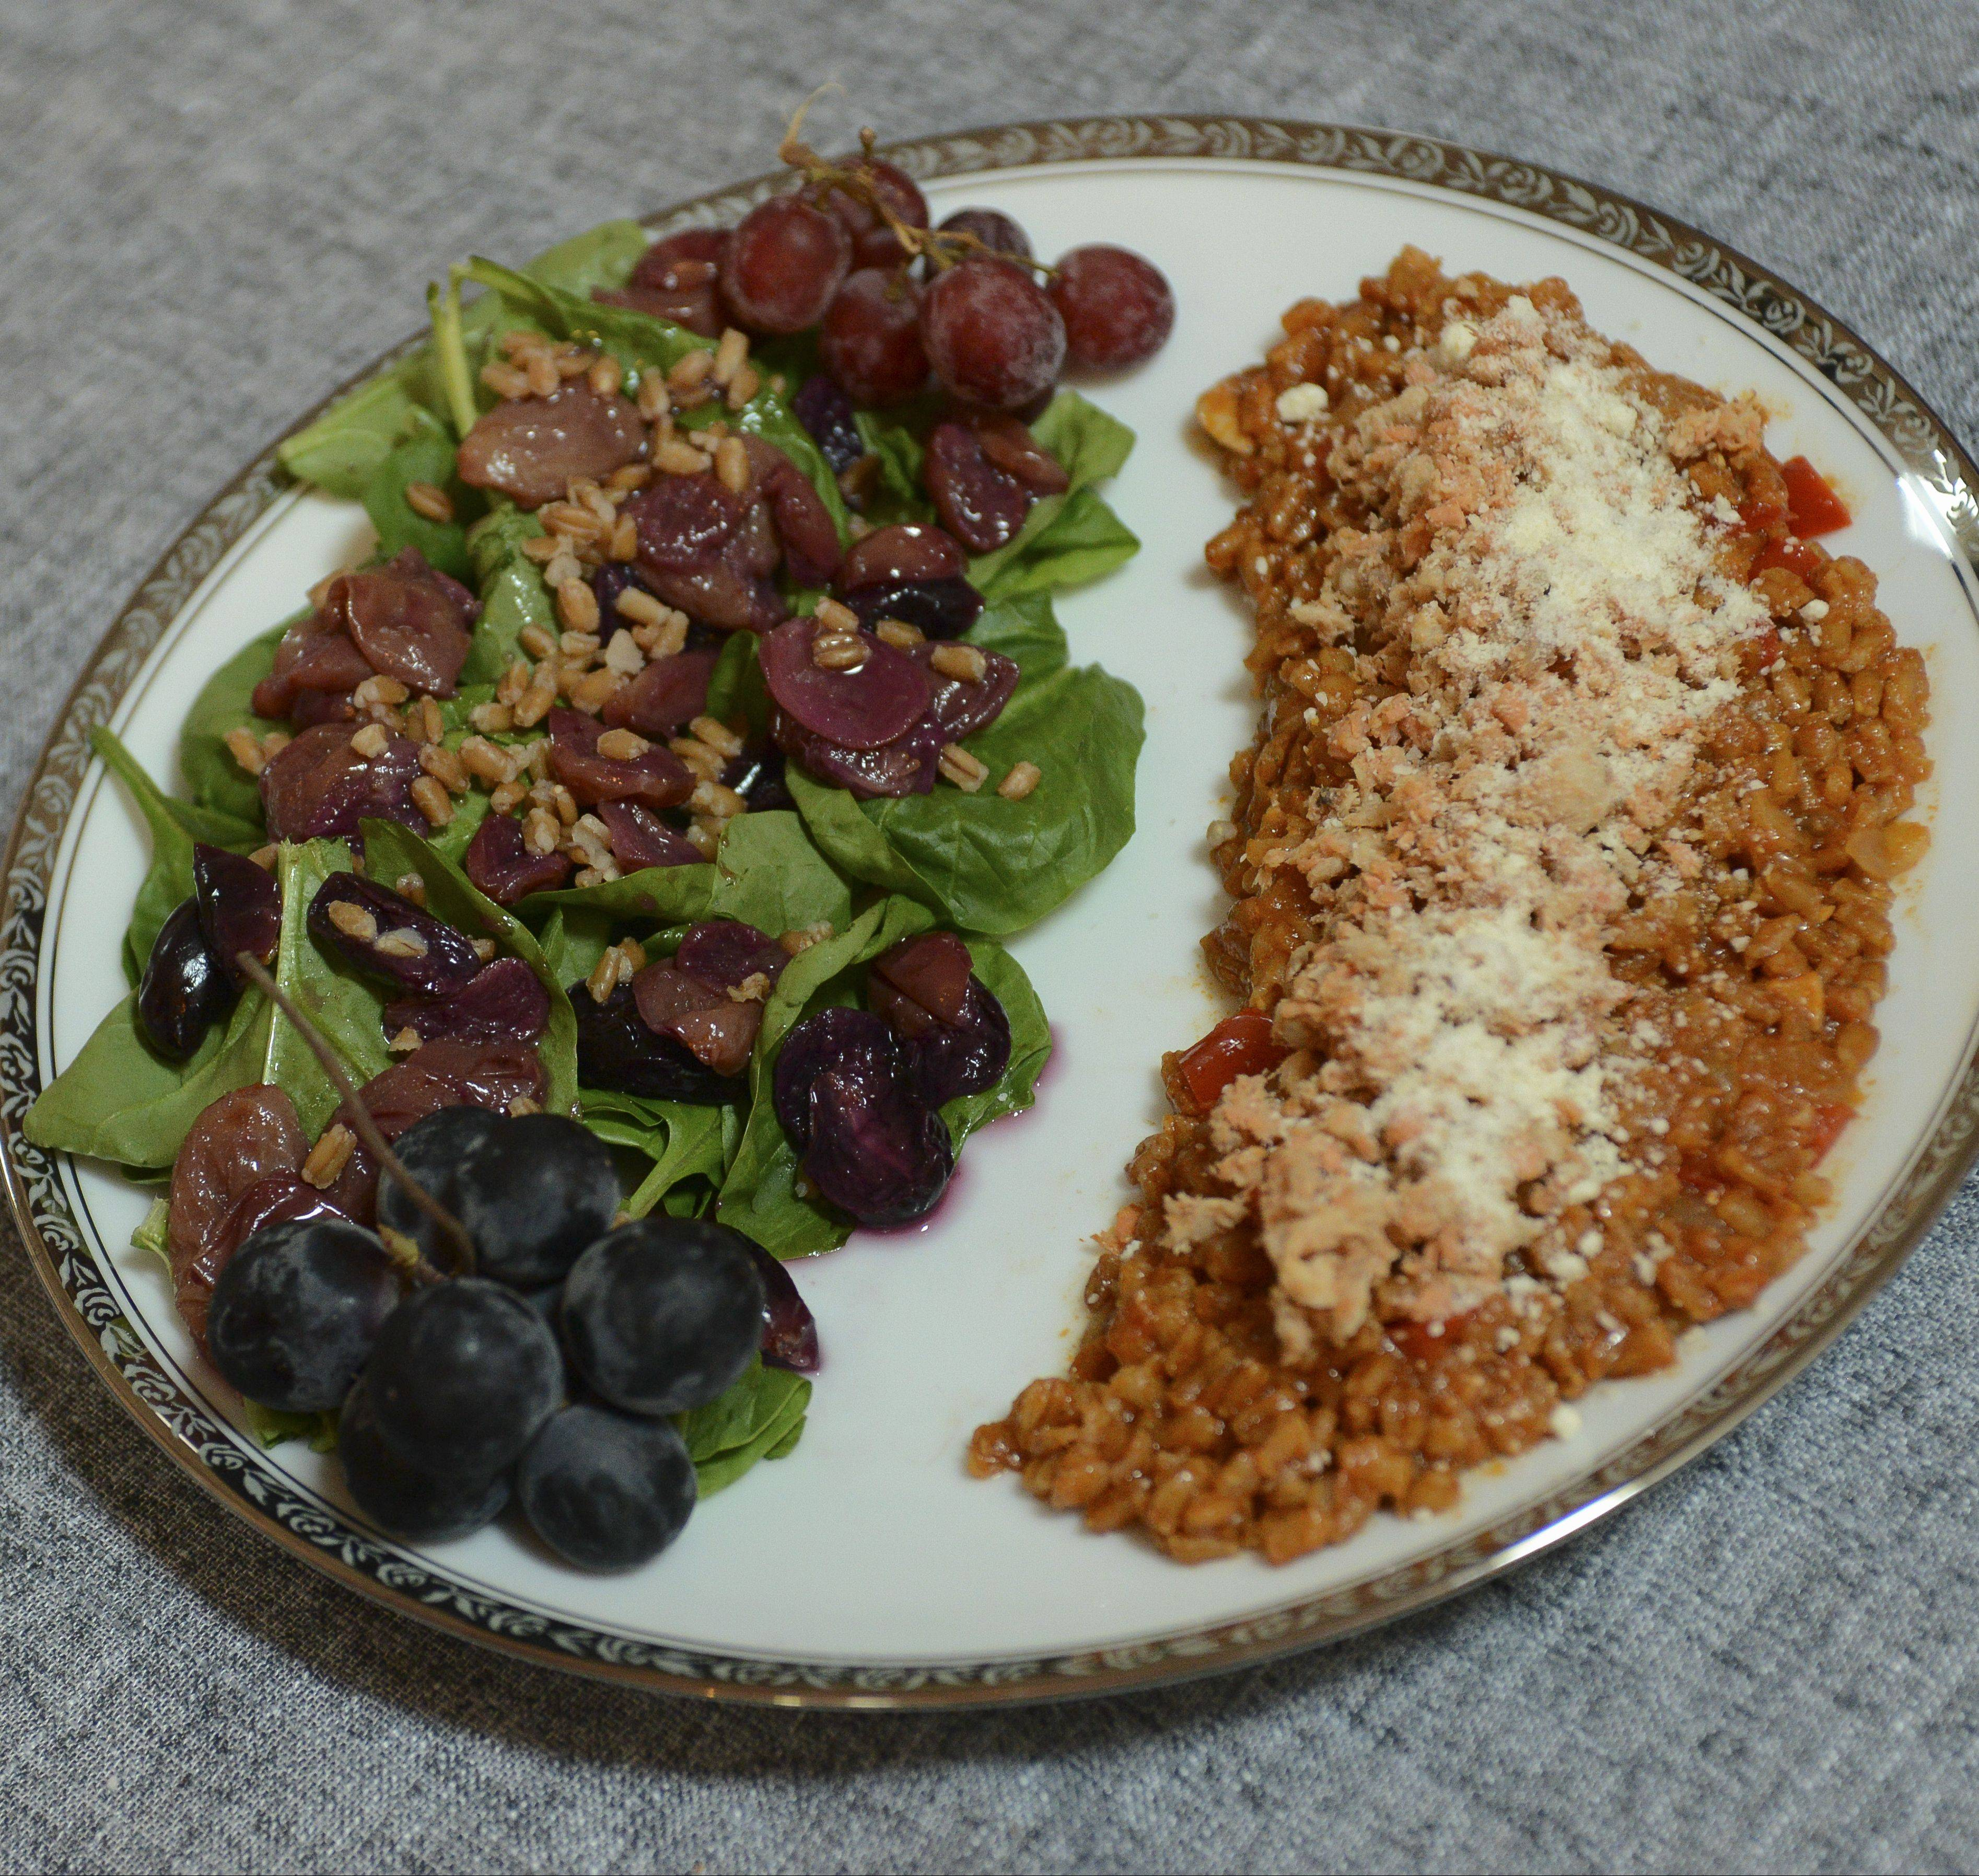 Carrie Shawala cooked farro like risotto, topped it with canned salmon and paired it with a sauteed grape salad.